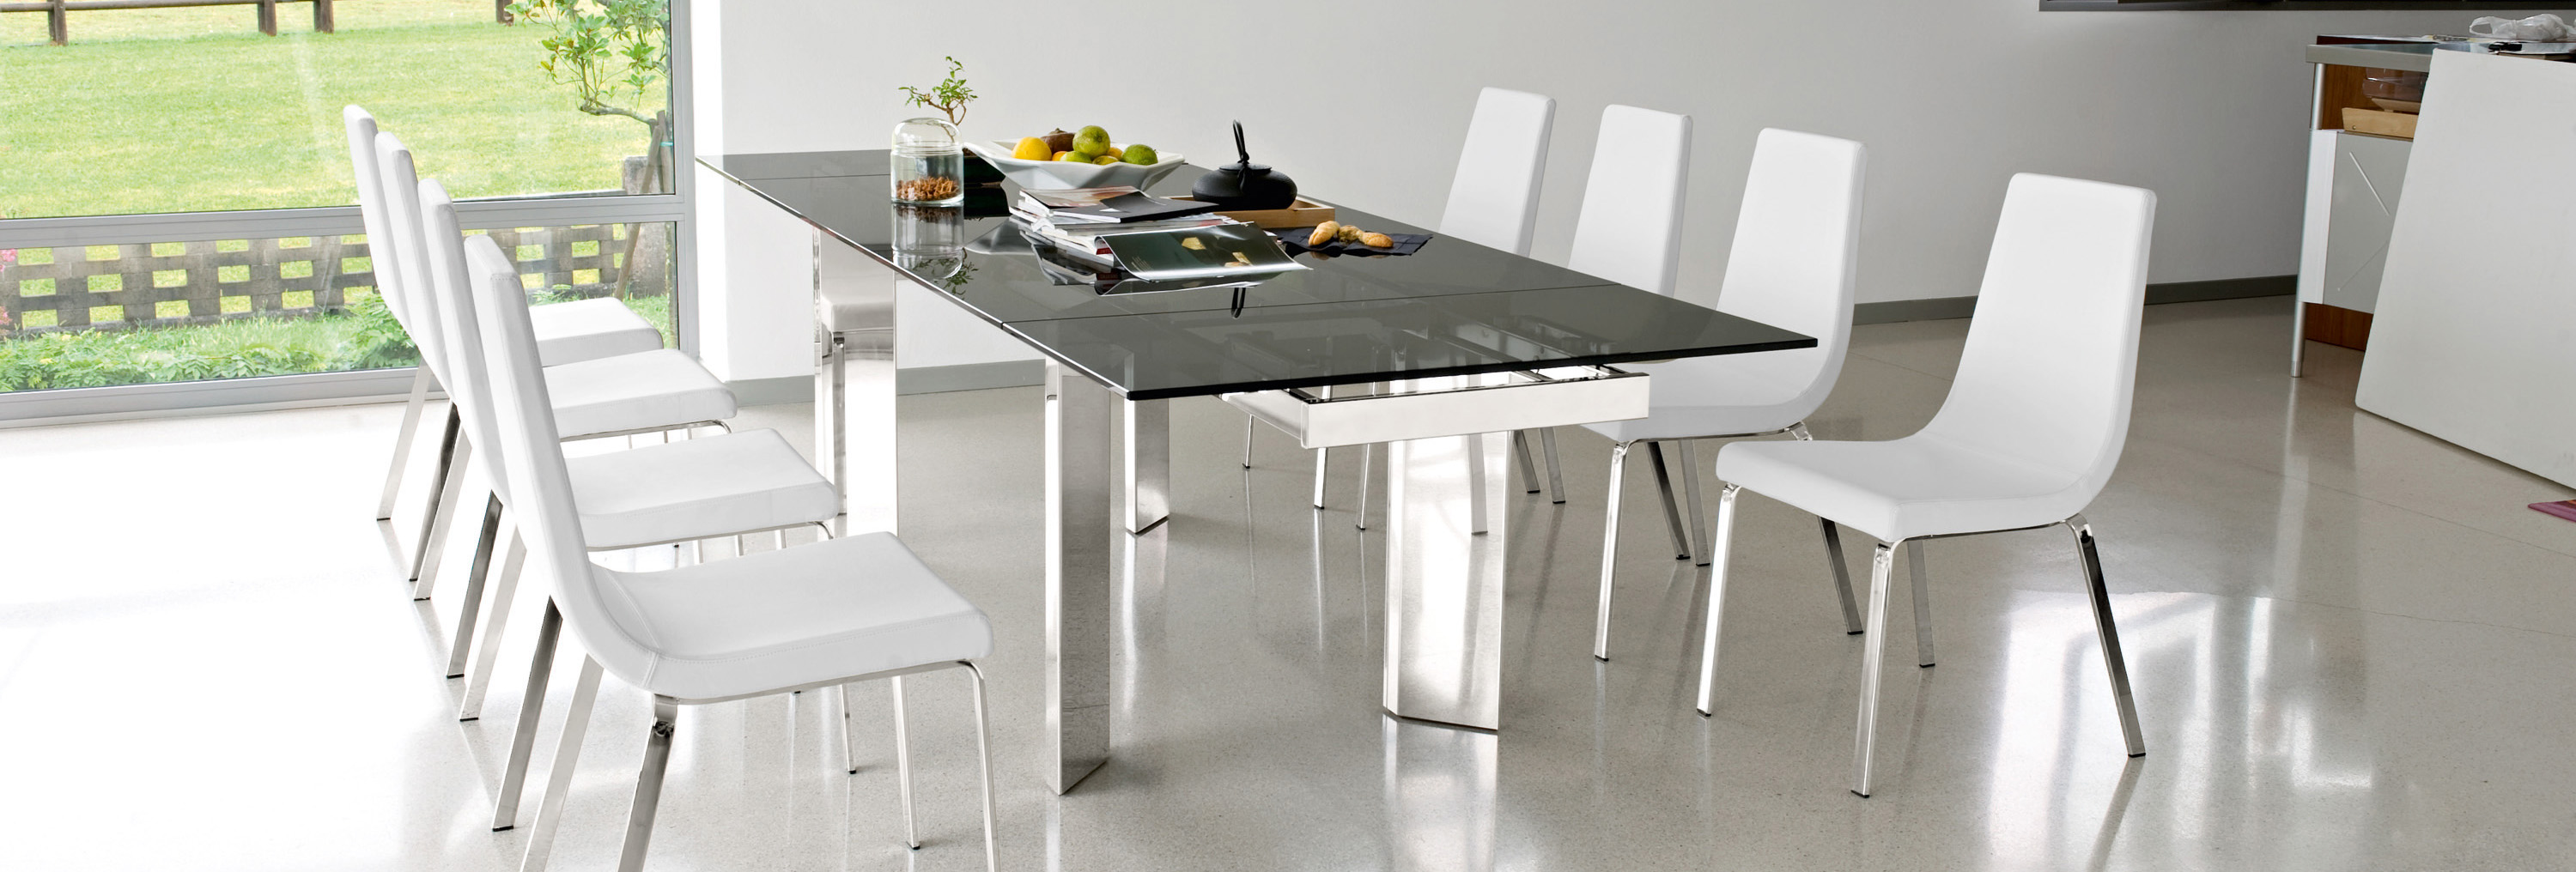 Calligaris Tower Modern Extendable Glass Dining Table  : cs4057 rgtgcs1095 lh700 from calligaristoronto.ca size 3000 x 1016 jpeg 591kB